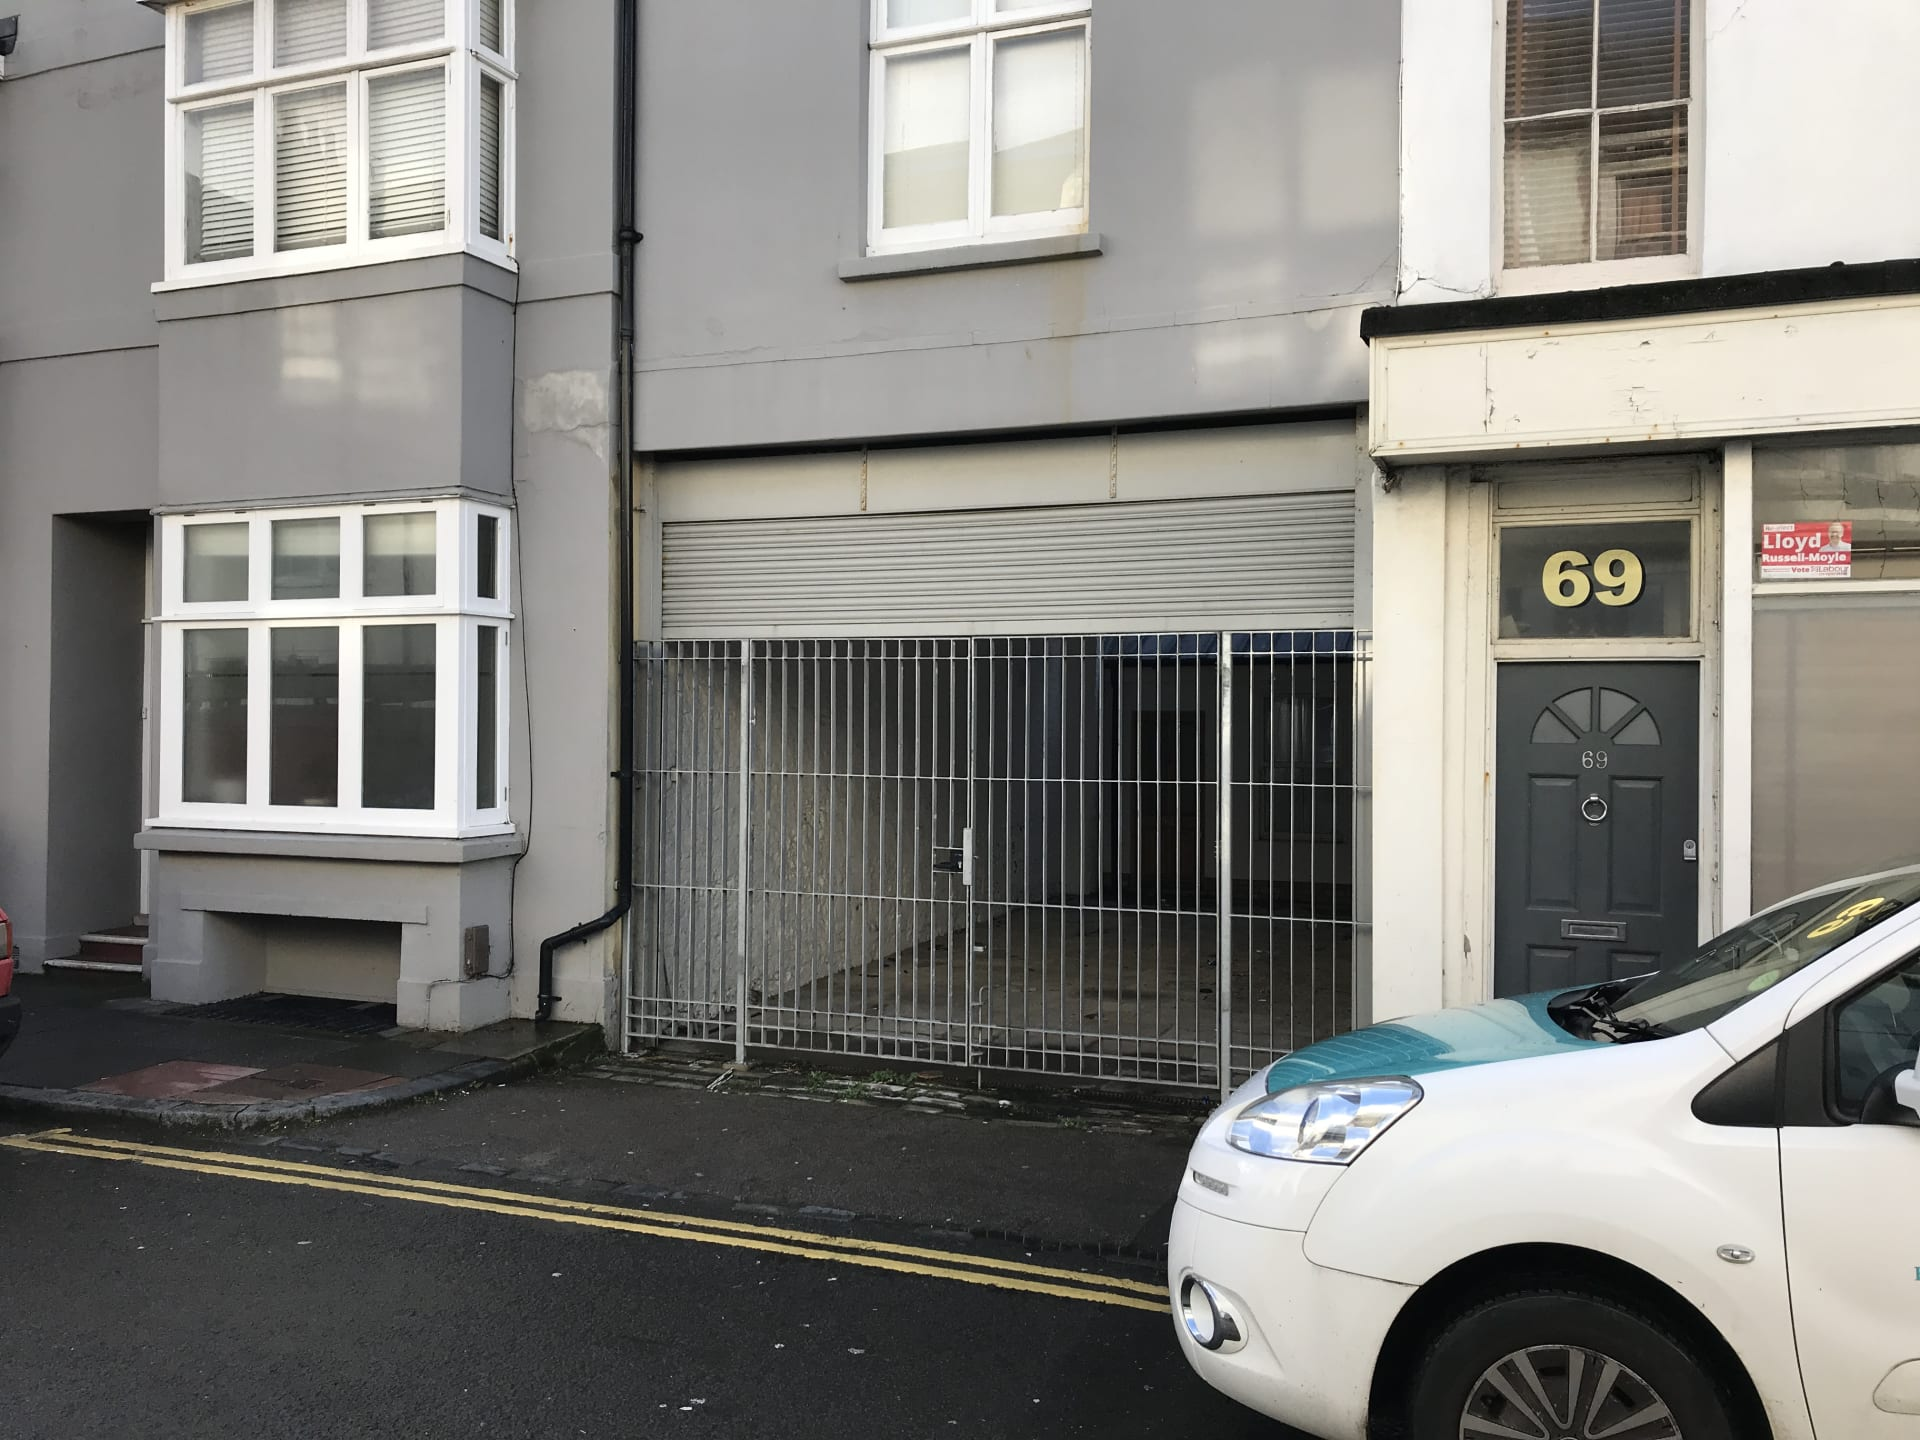 68A ST GEORGES ROAD BRIGHTON image.